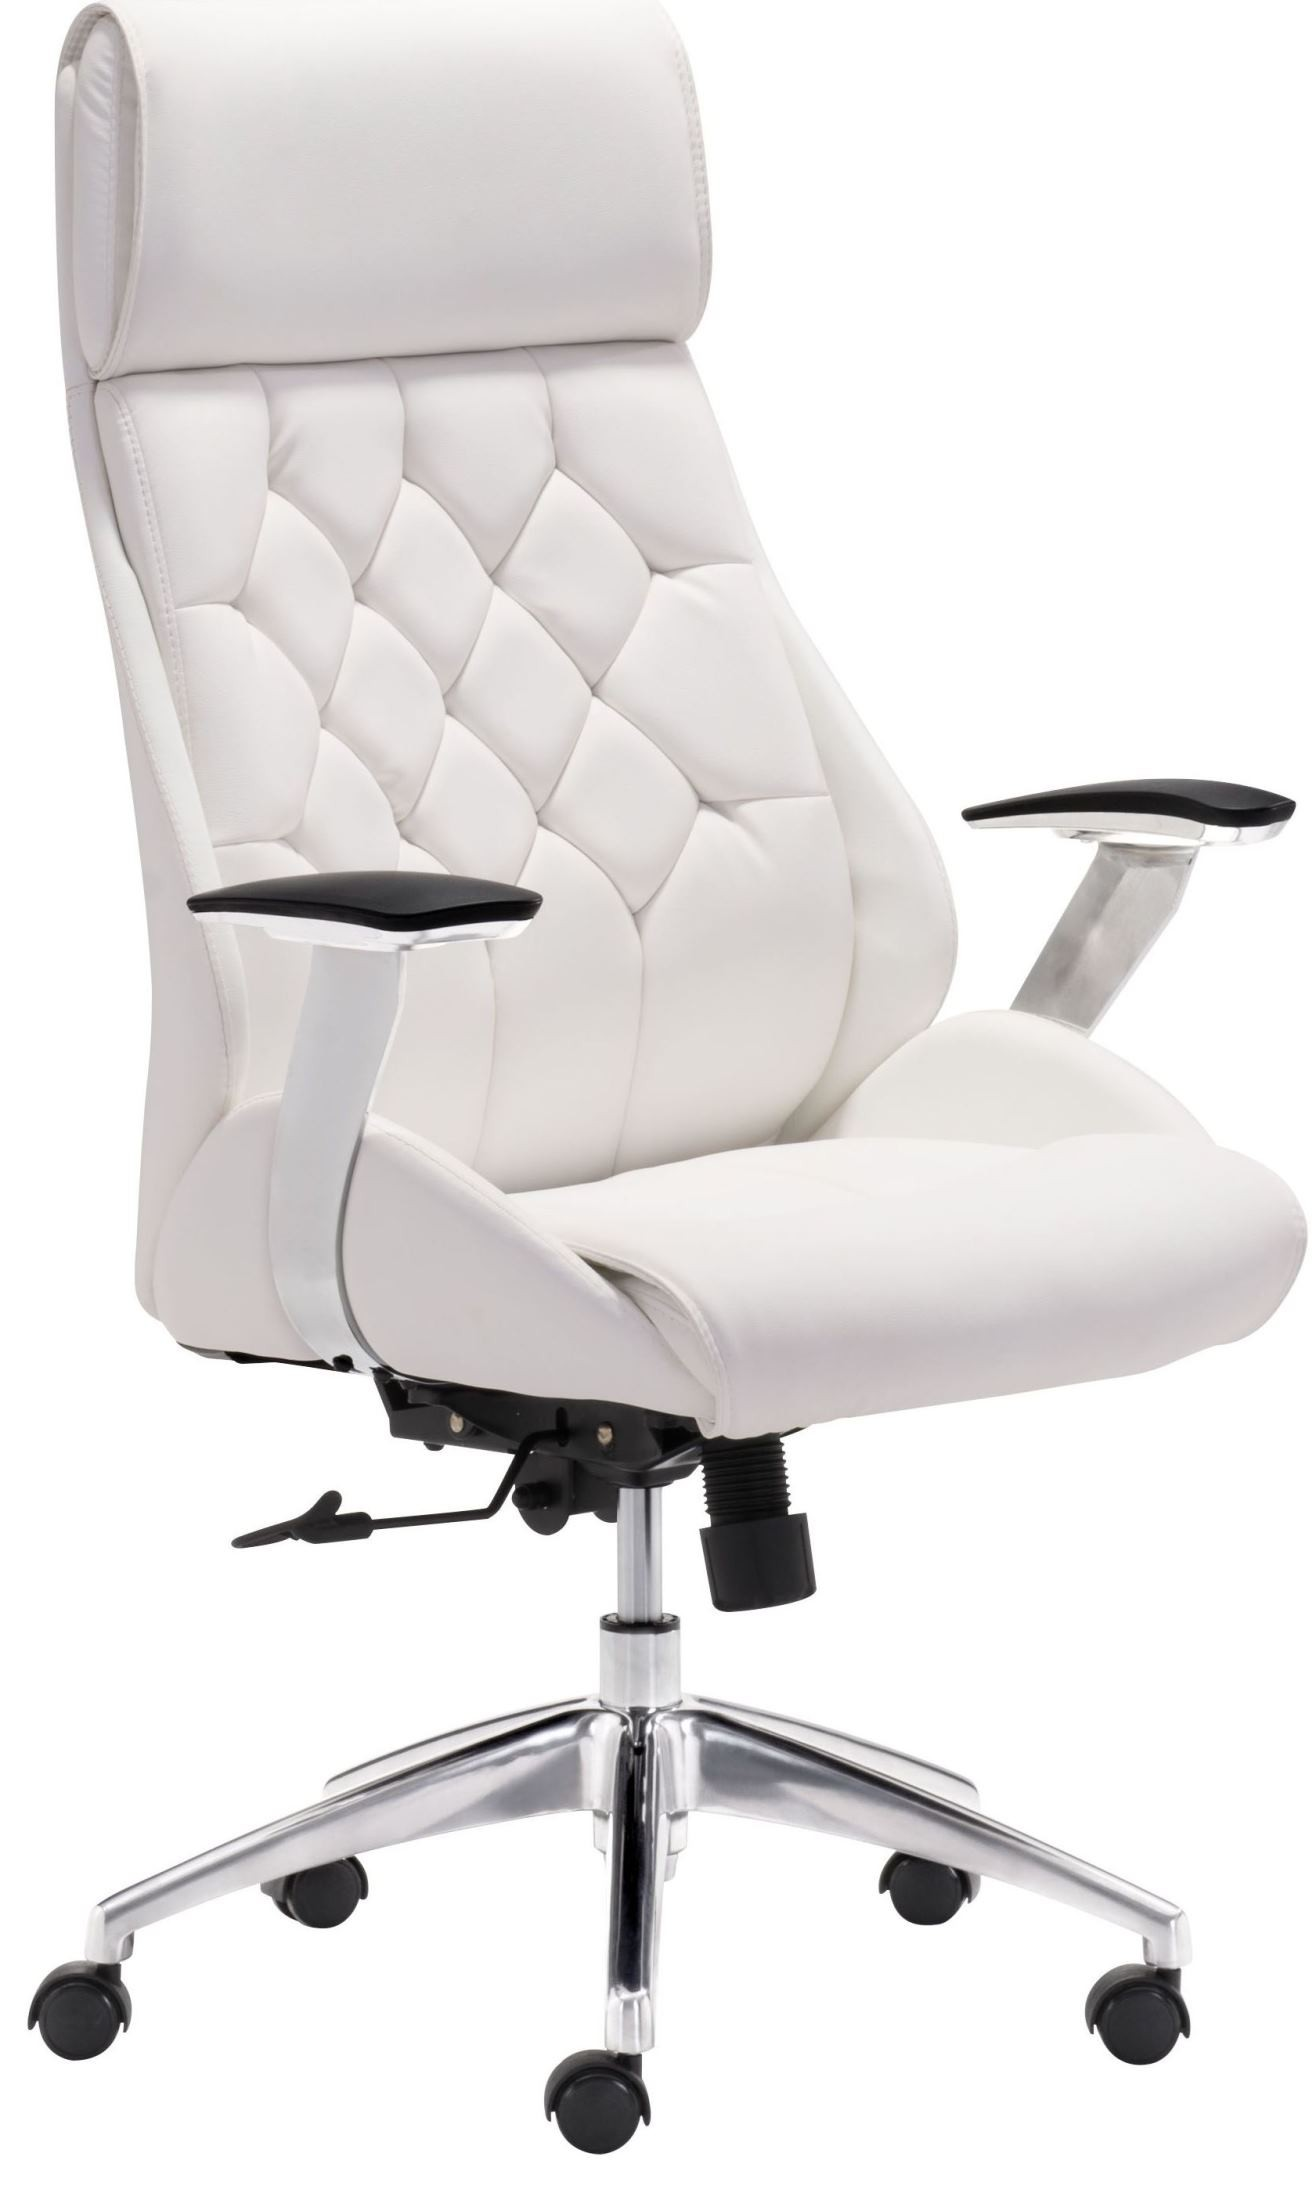 boutique white office chair from zuo mod 205891 coleman furniture. Black Bedroom Furniture Sets. Home Design Ideas